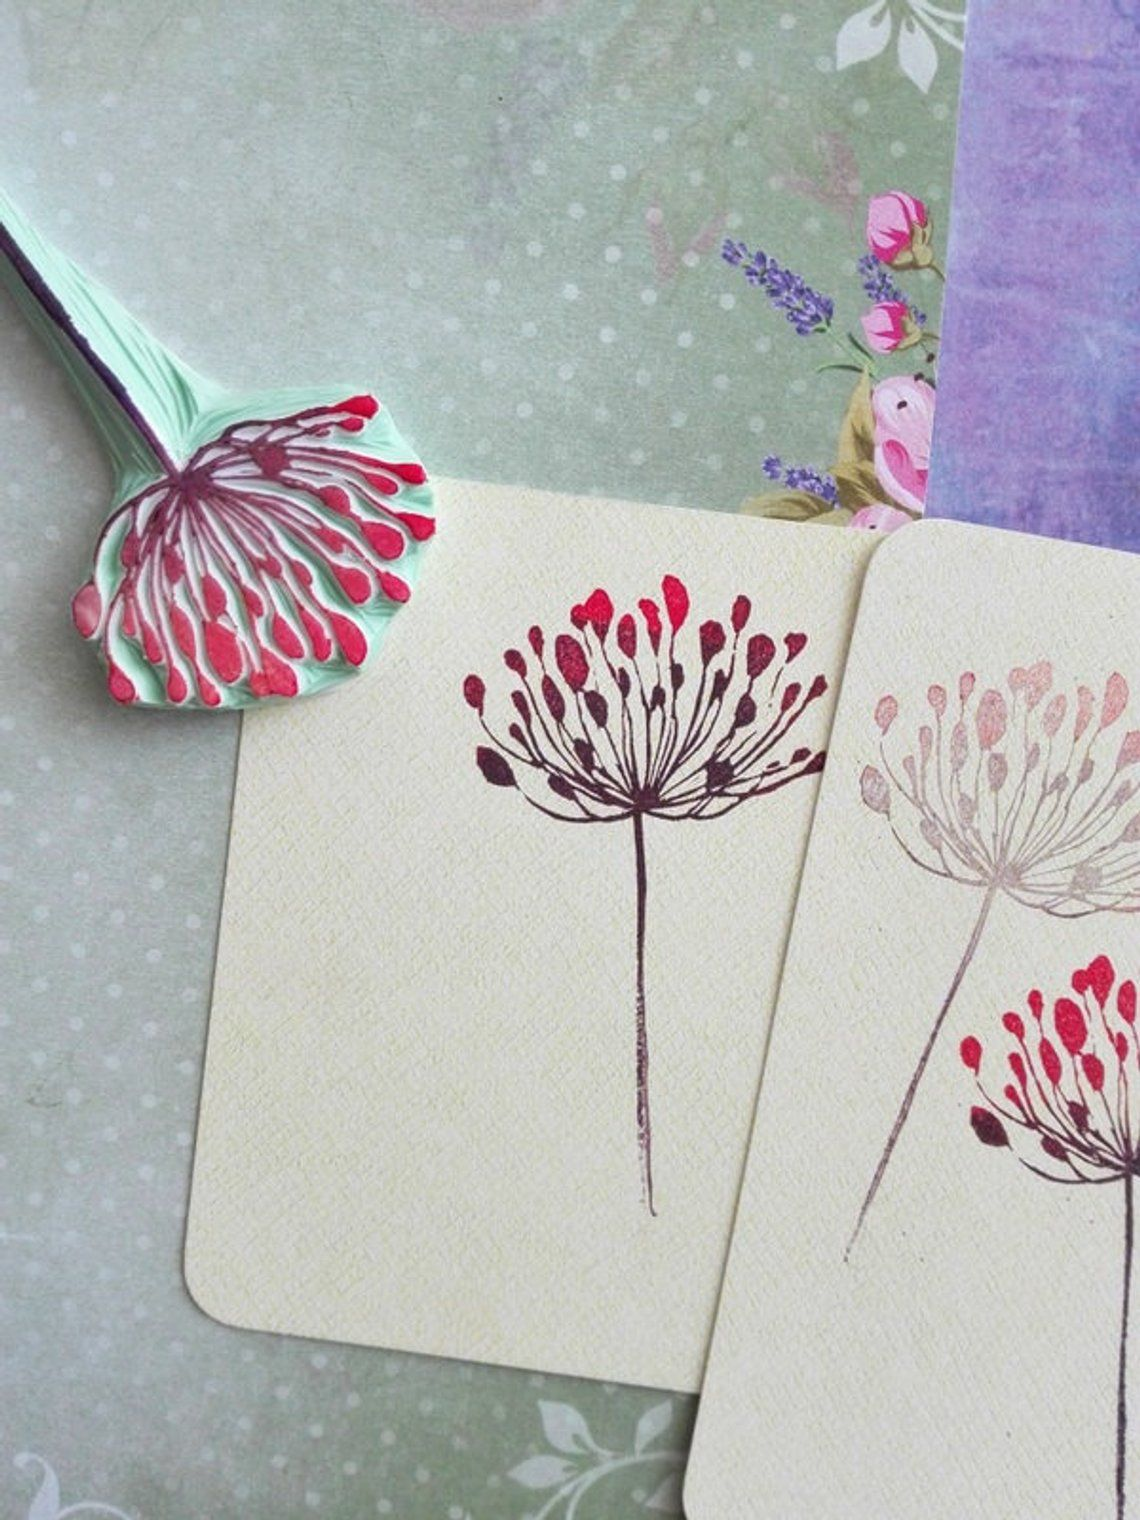 MaGuo Life Garden Flower Plant Clear Stamp Silicone for Paper Craft Card Making Decoration orDIY Scrapbooking